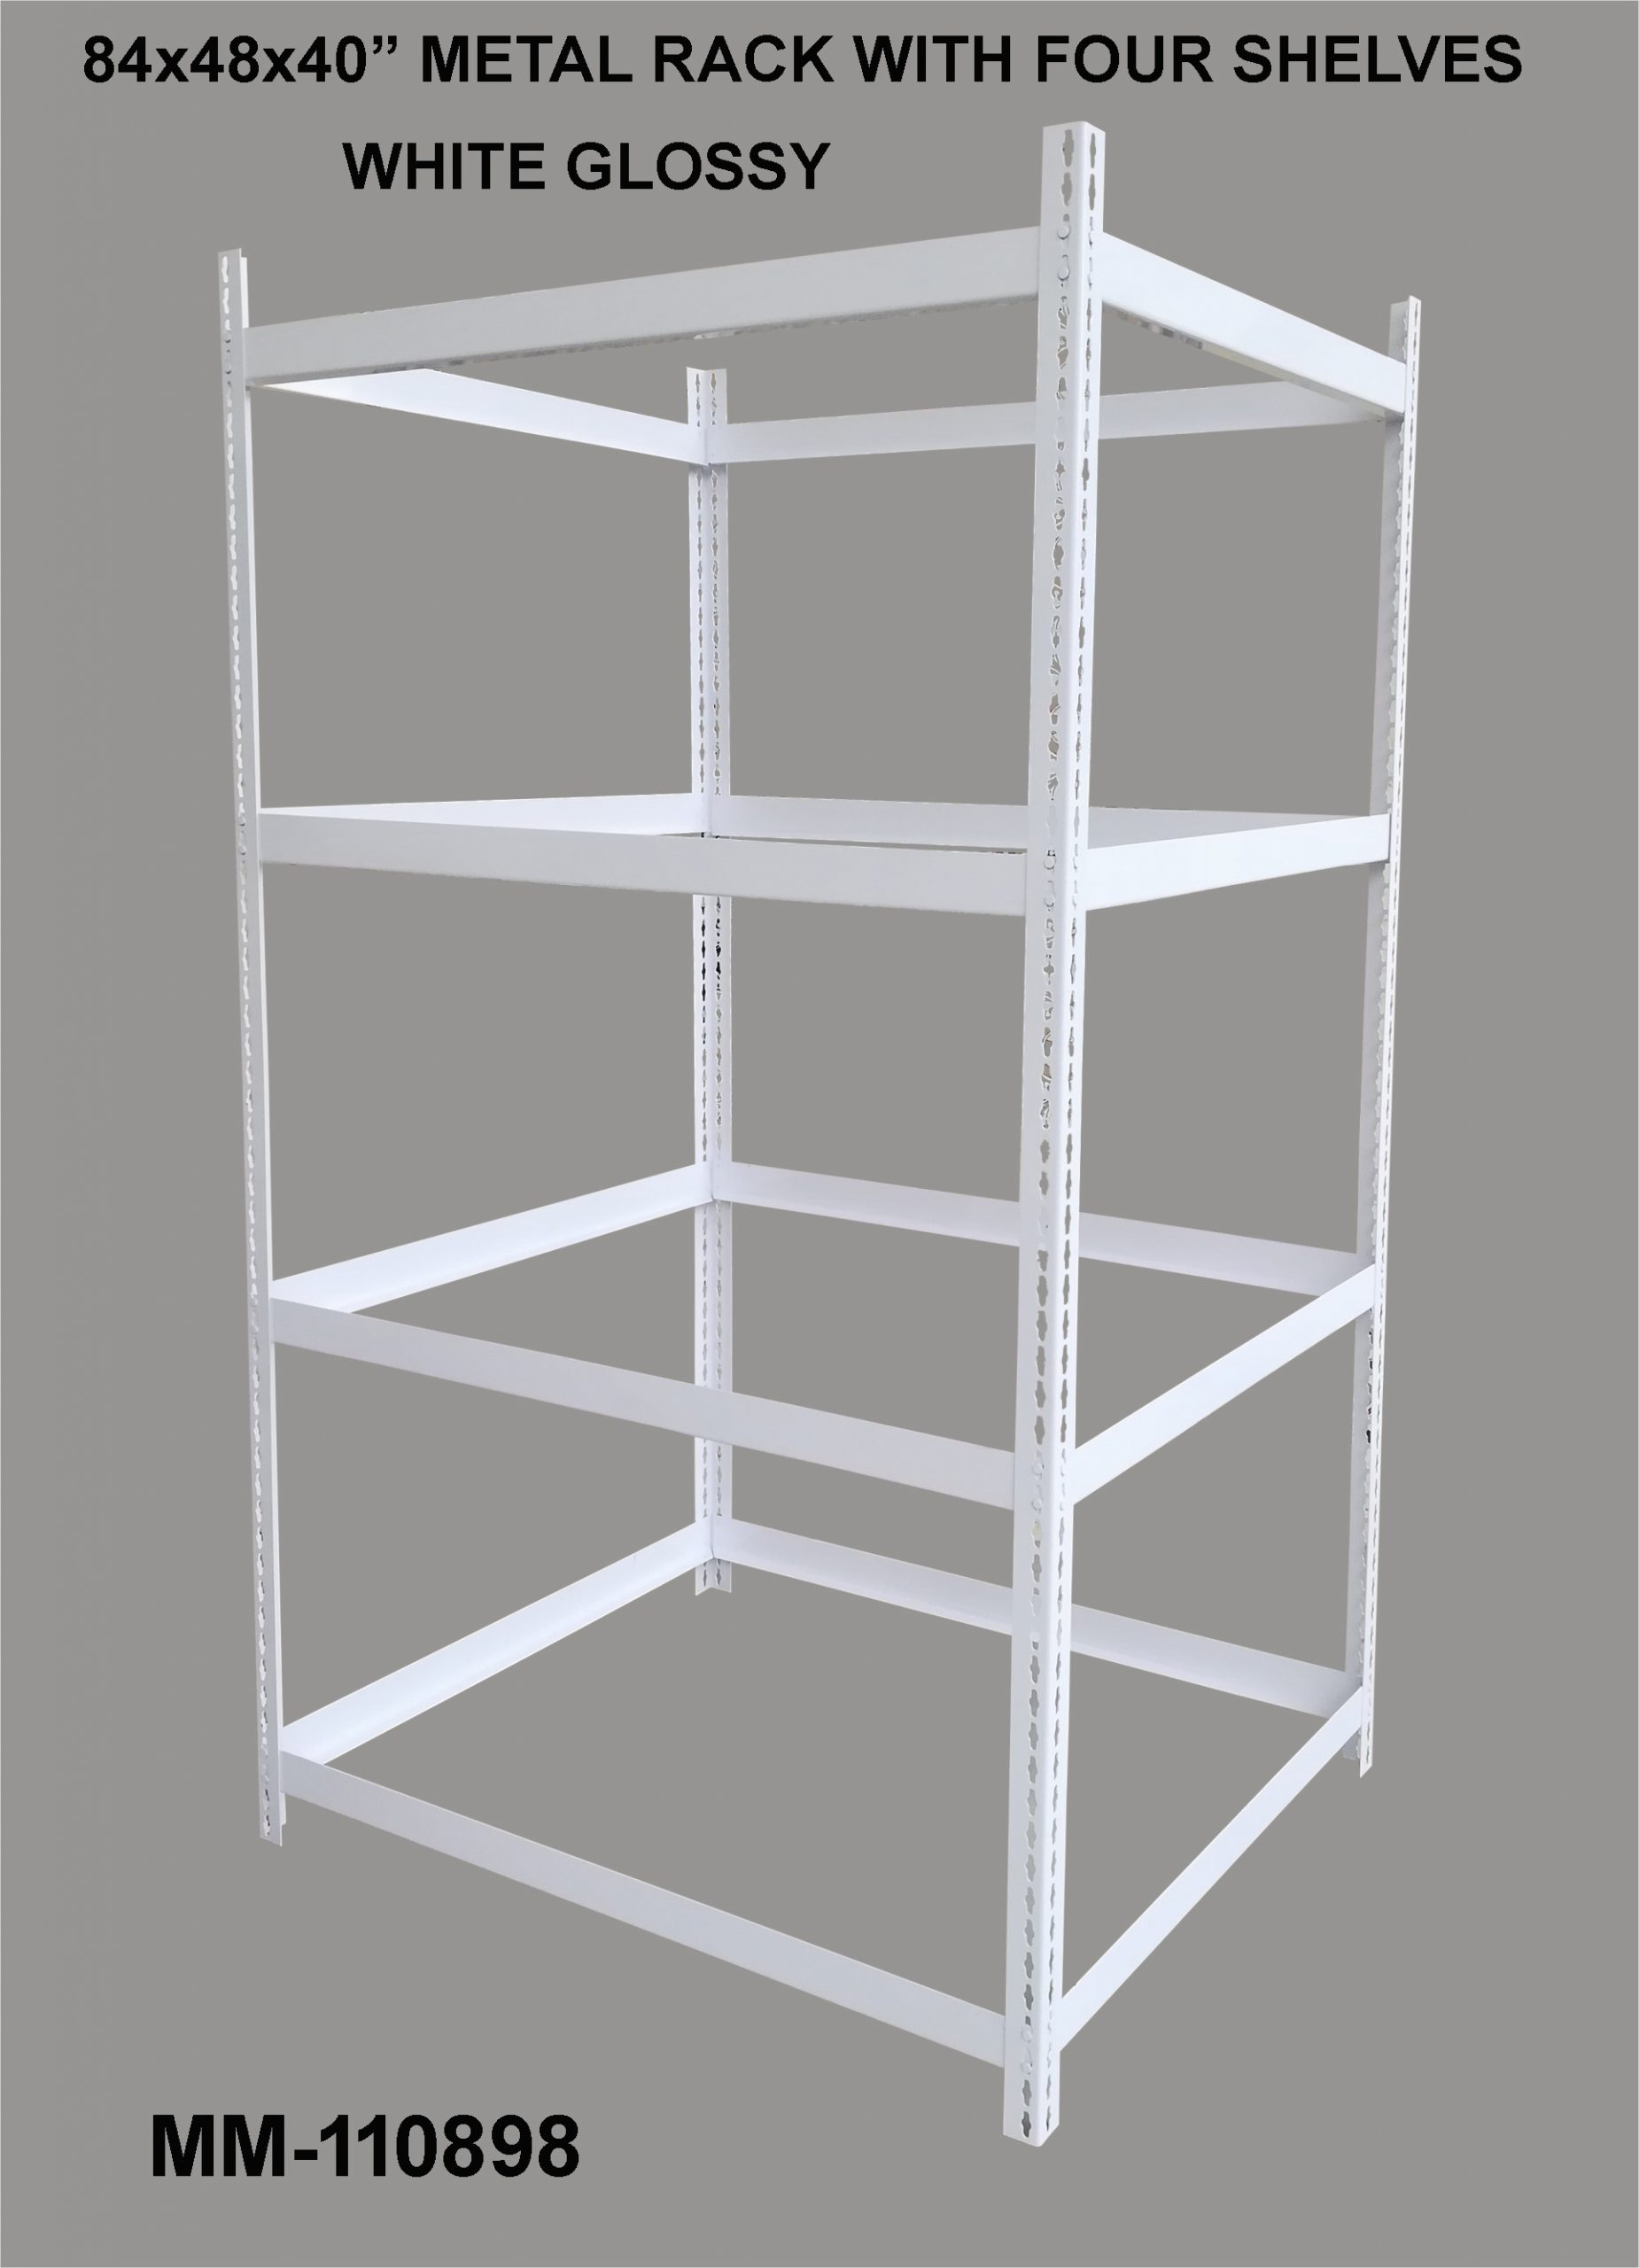 Metal Rack with four shelves white glossy